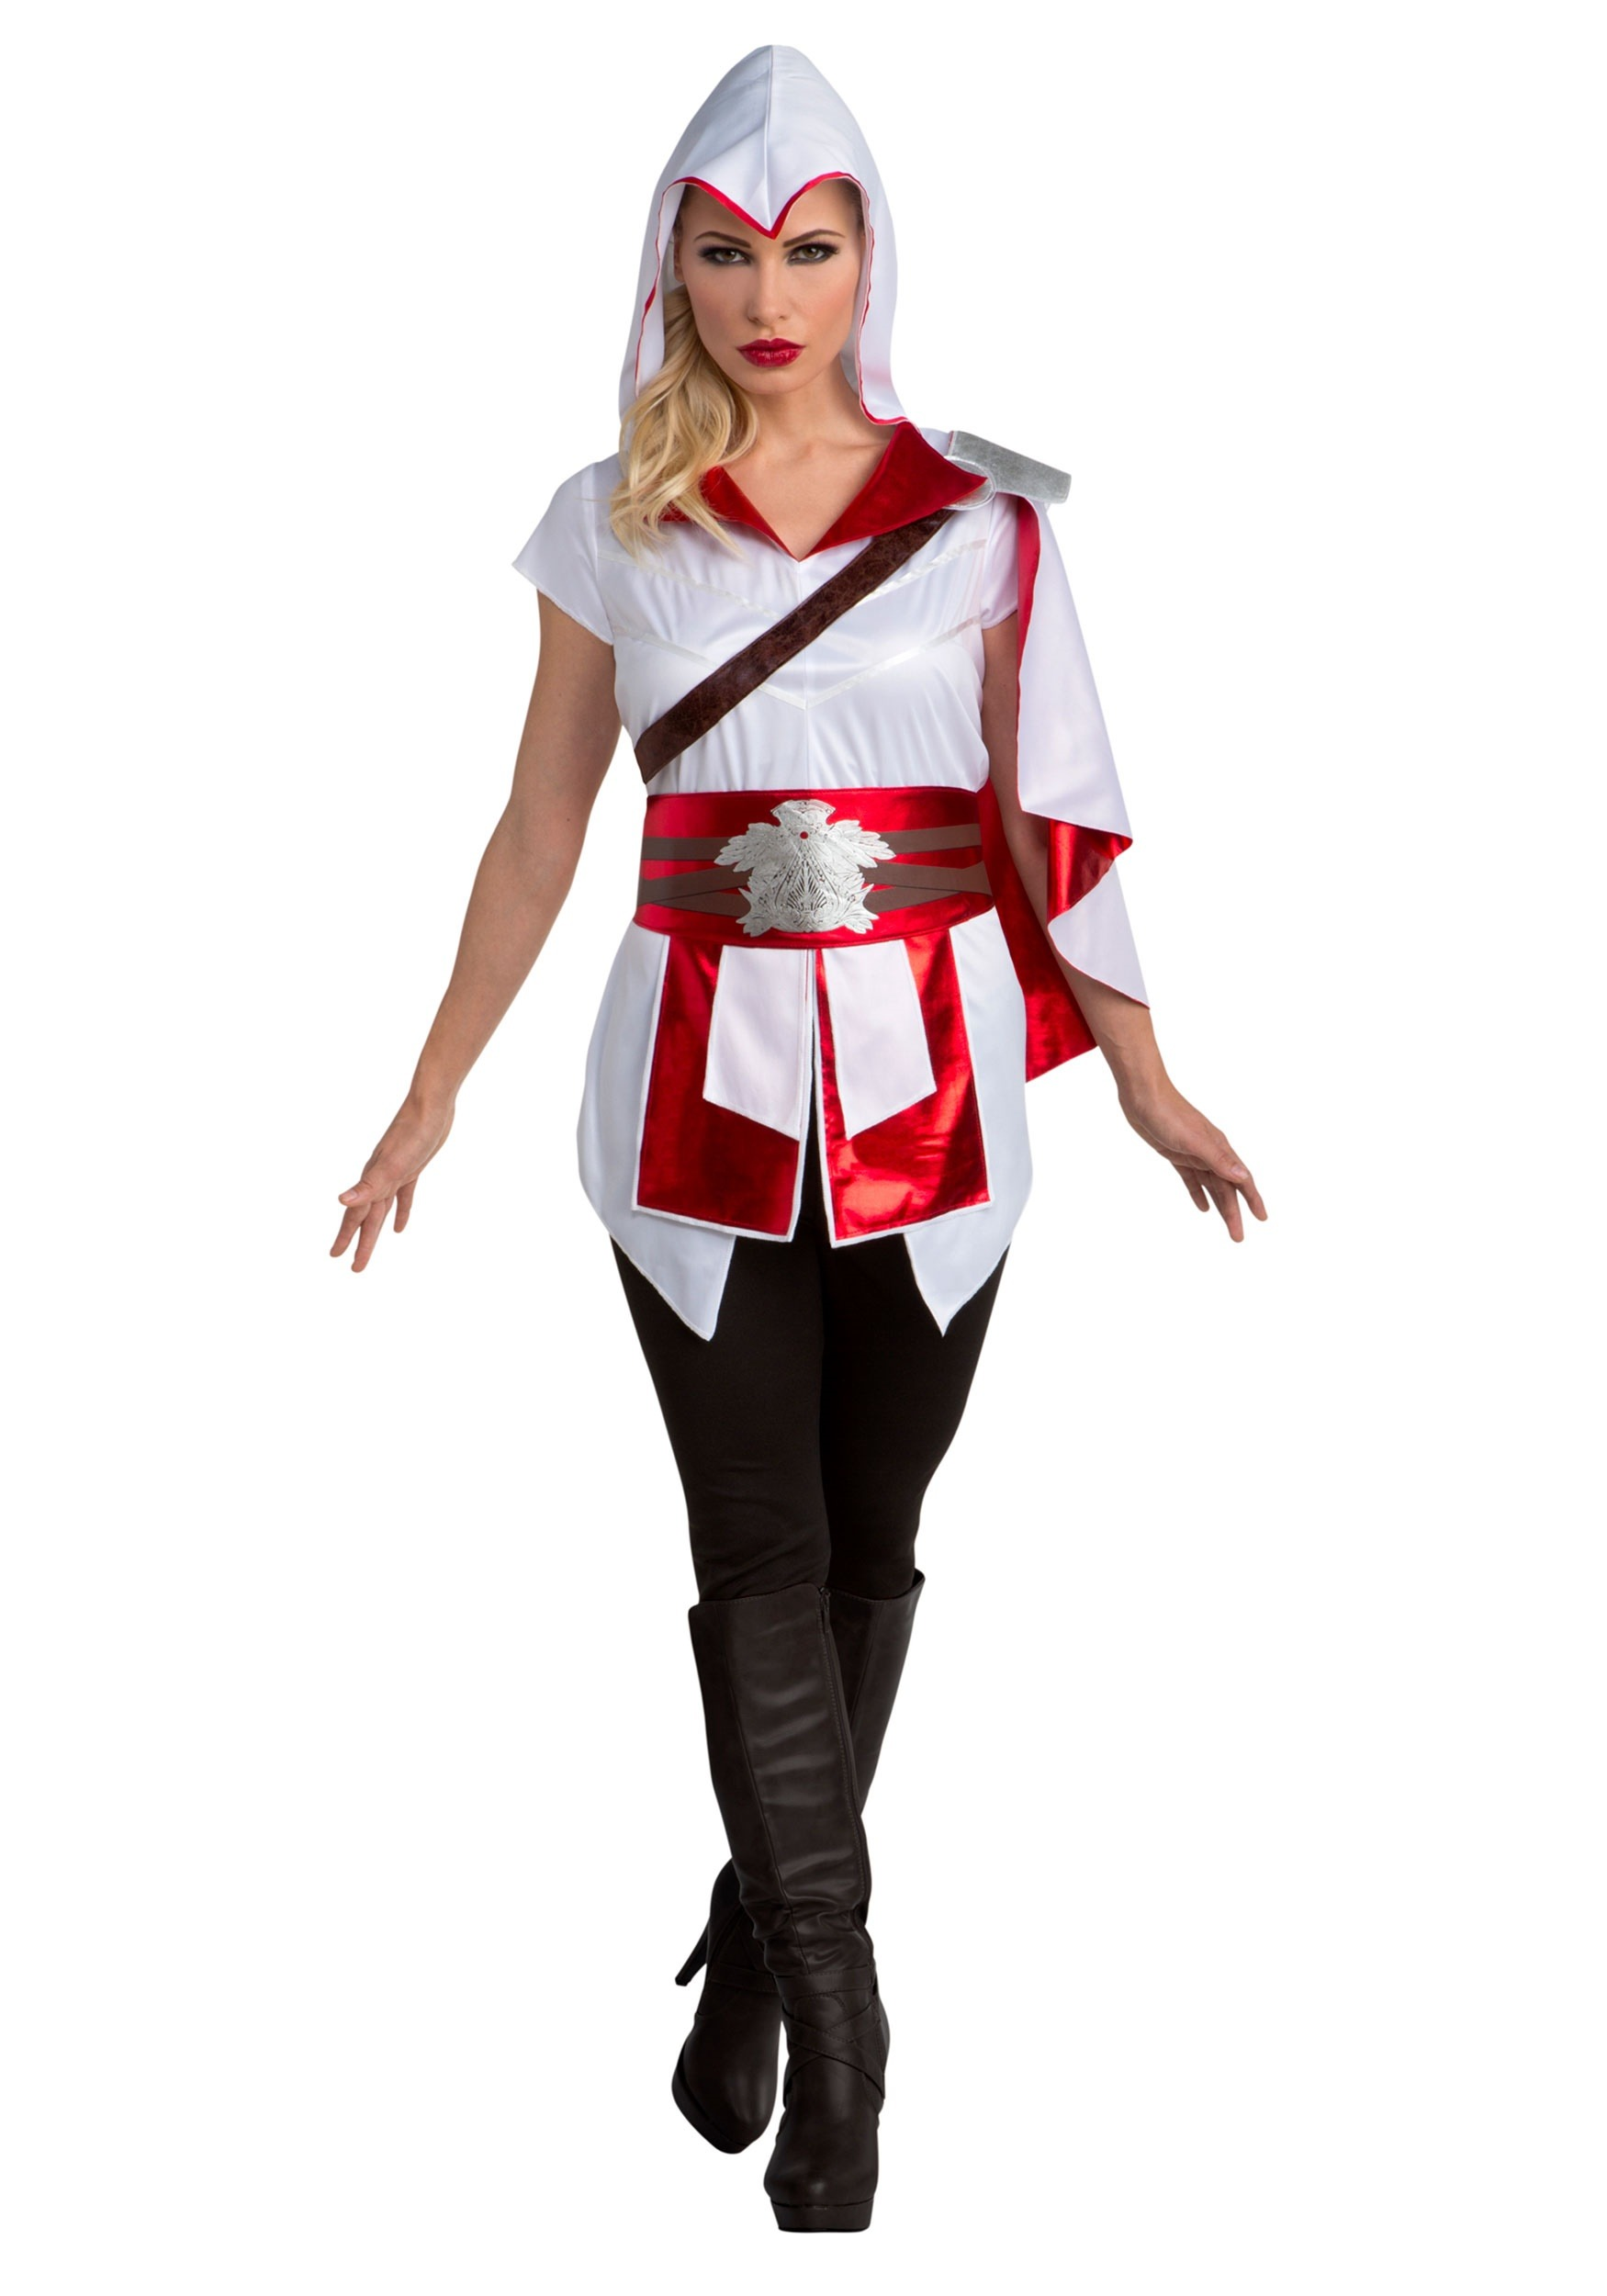 INOpets.com Anything for Pets Parents & Their Pets Assassin's Creed II Ezio Costume for Women